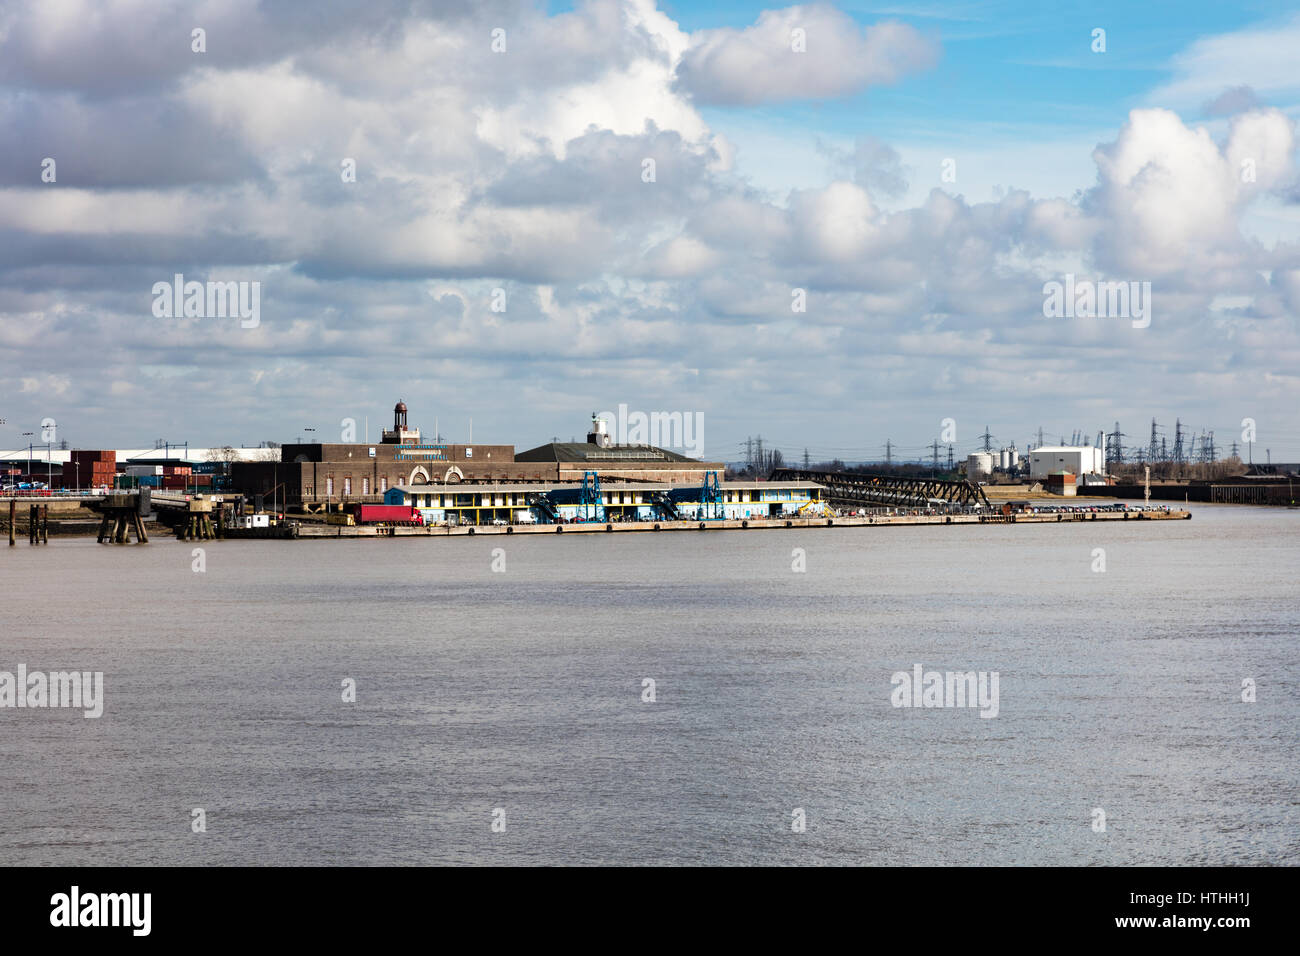 London International Cruise Terminal on the River Thames at Tilbury, viewed from Gravesend in Kent, UK - Stock Image